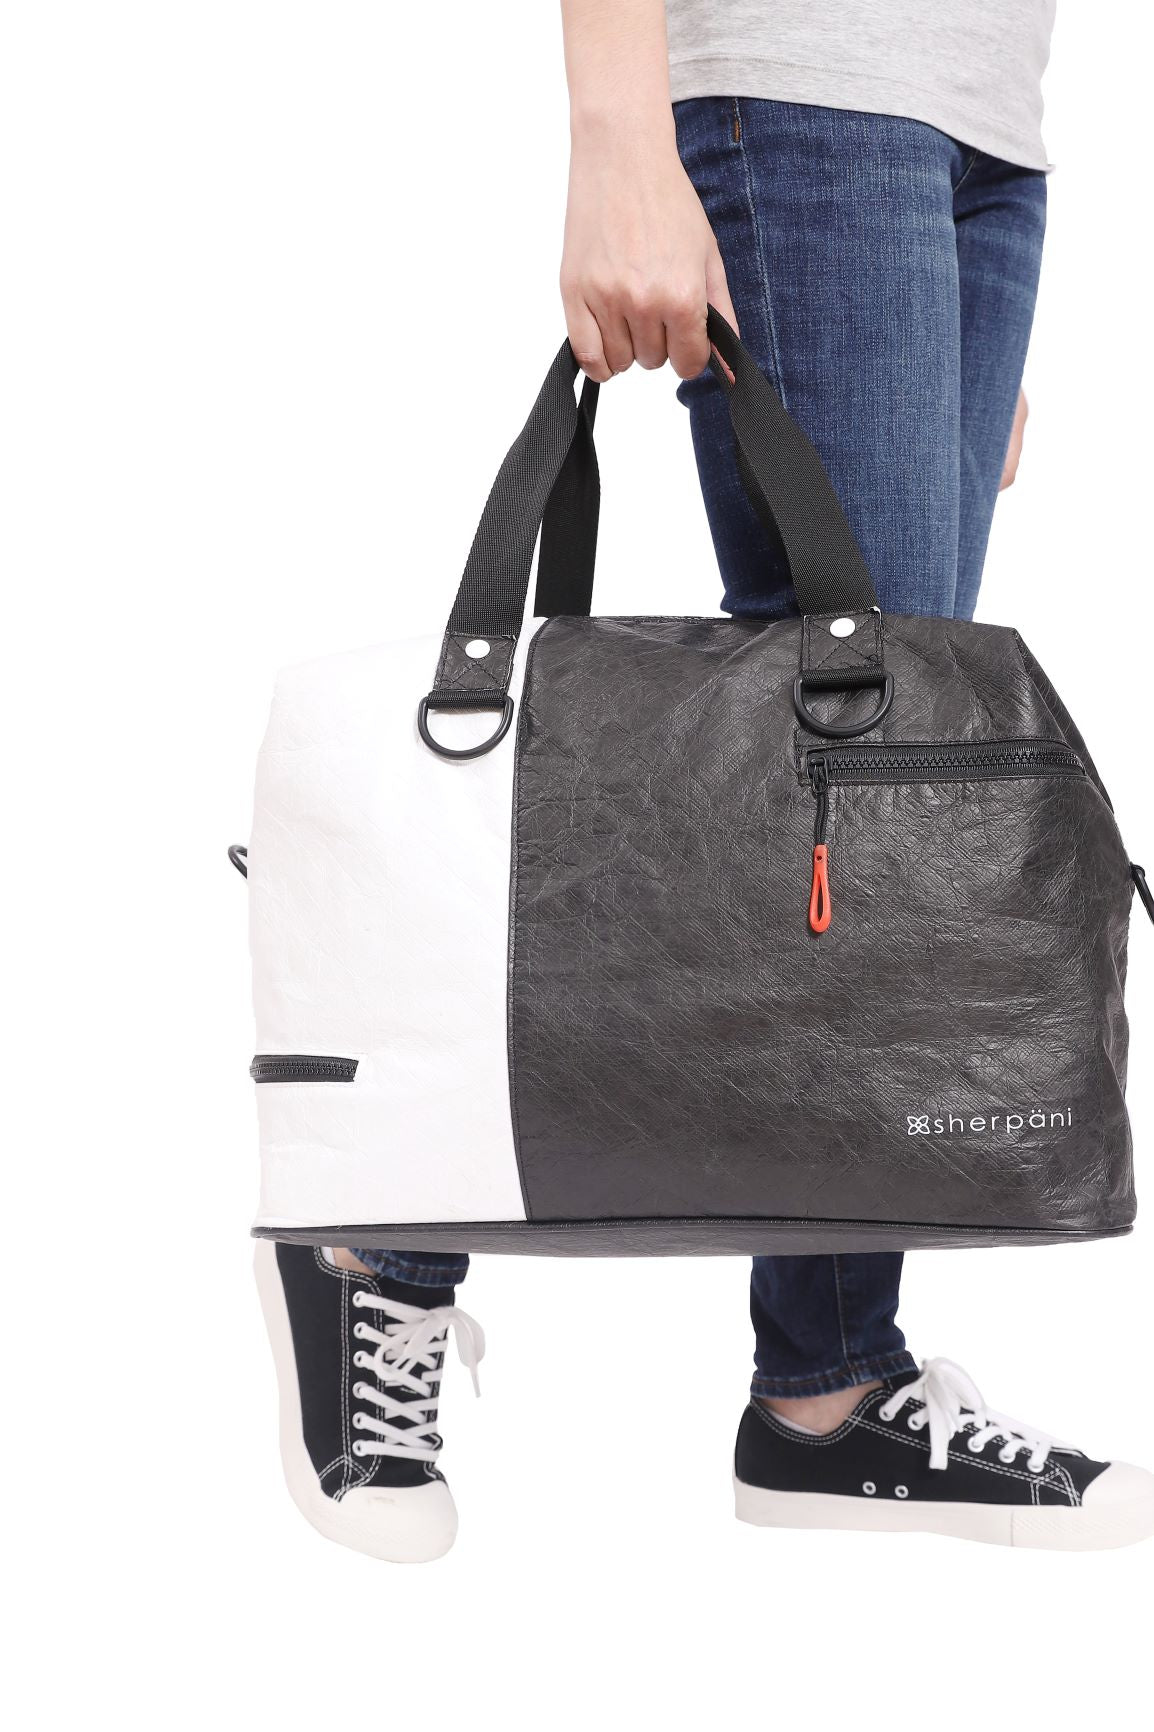 Black & White Duffle bag and Gym bag (as duffle bag) made with tyvek fabric